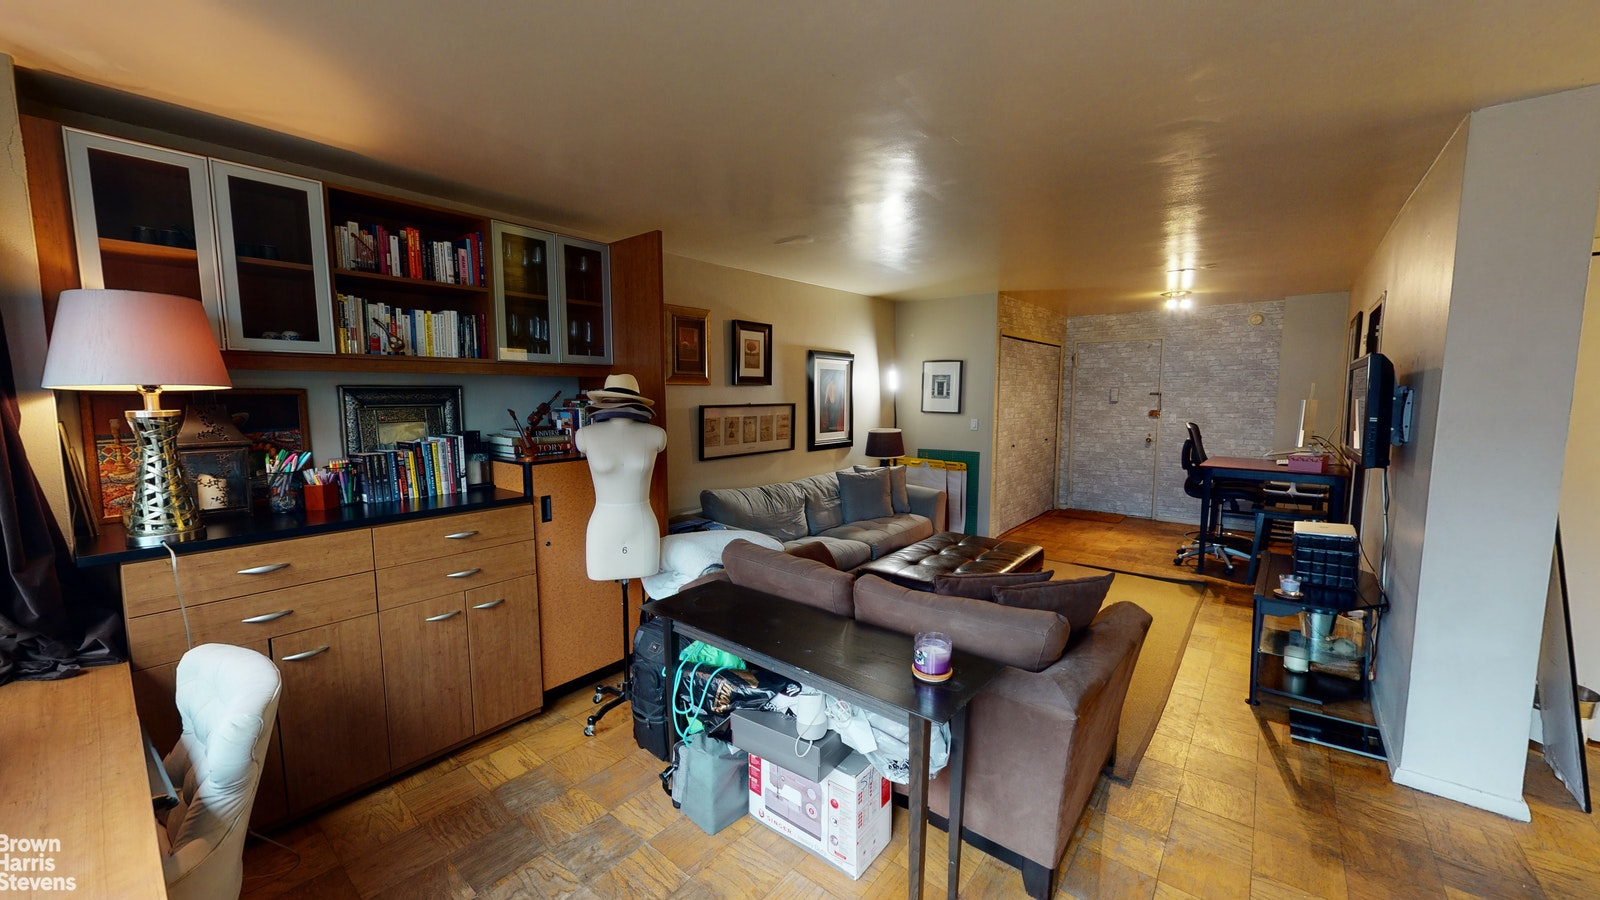 Apartment for sale at 360 West 22nd Street, Apt 5H